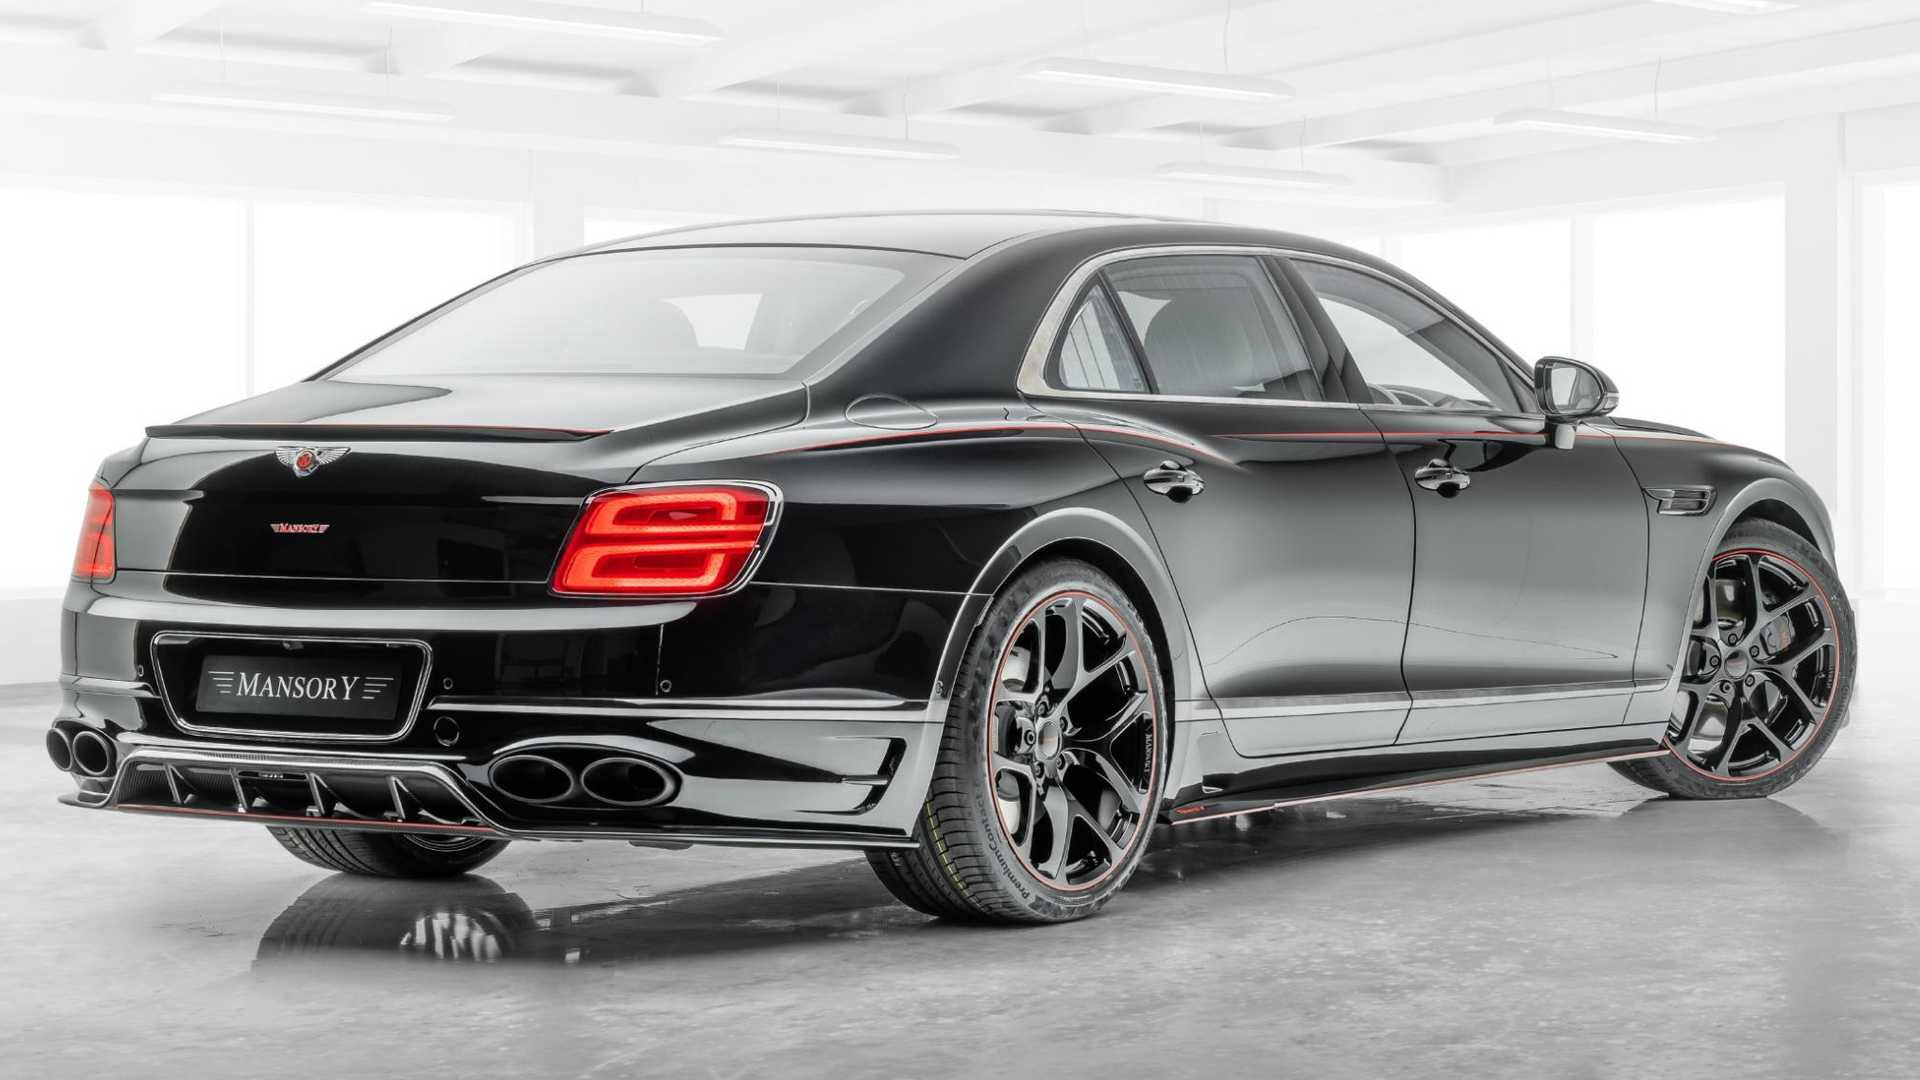 Mansory Bentley Flying Spur 2